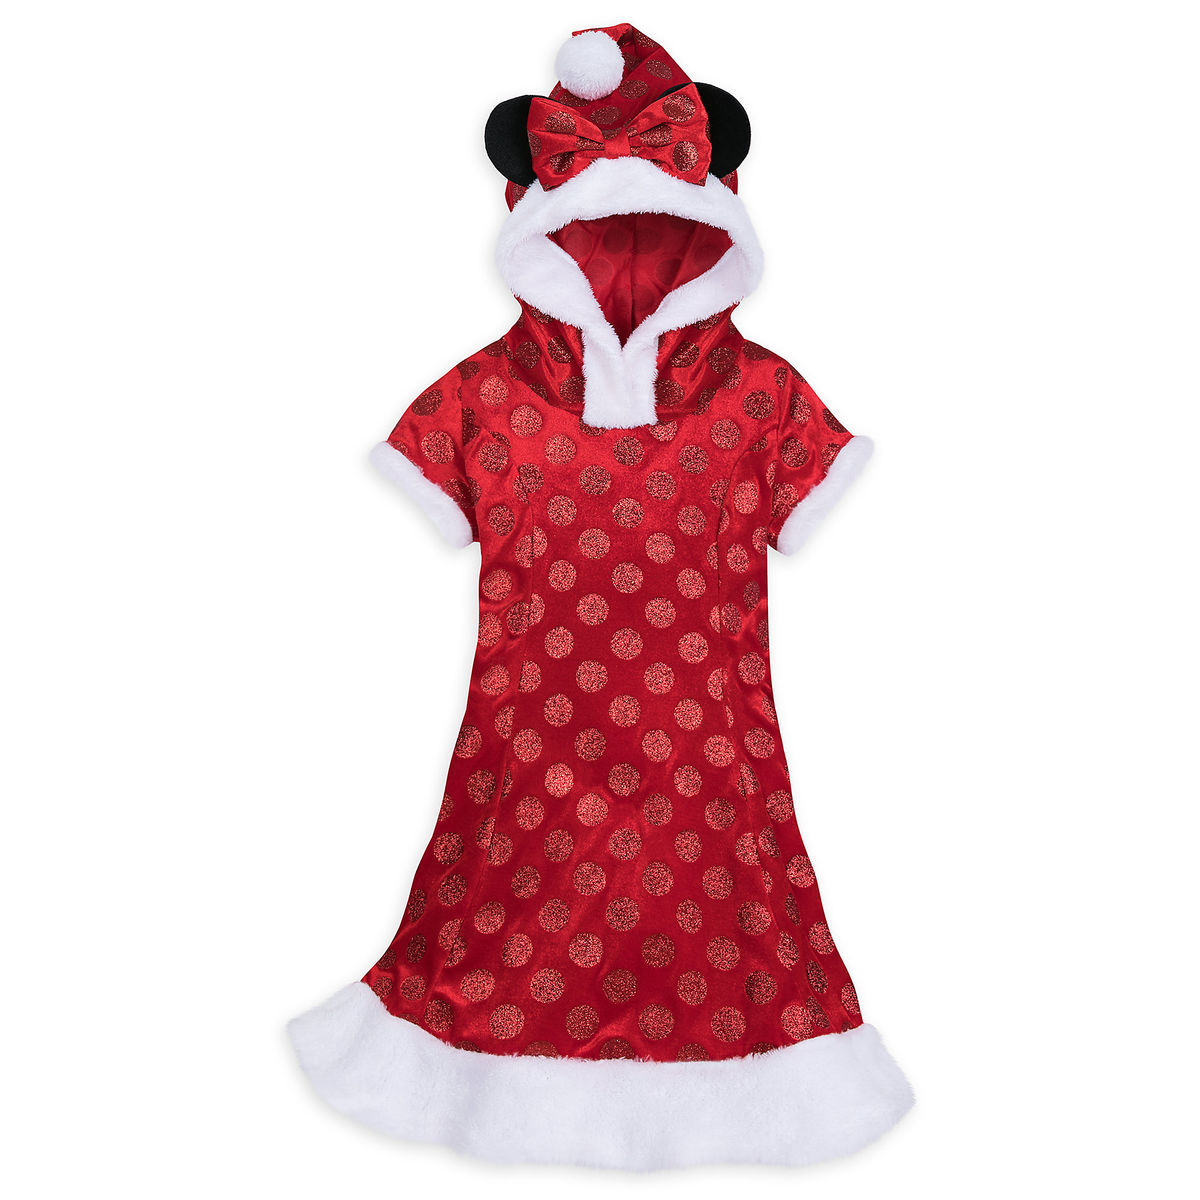 Disney Girl's Dress - Minnie Mouse Holiday Costume Dress with Hood